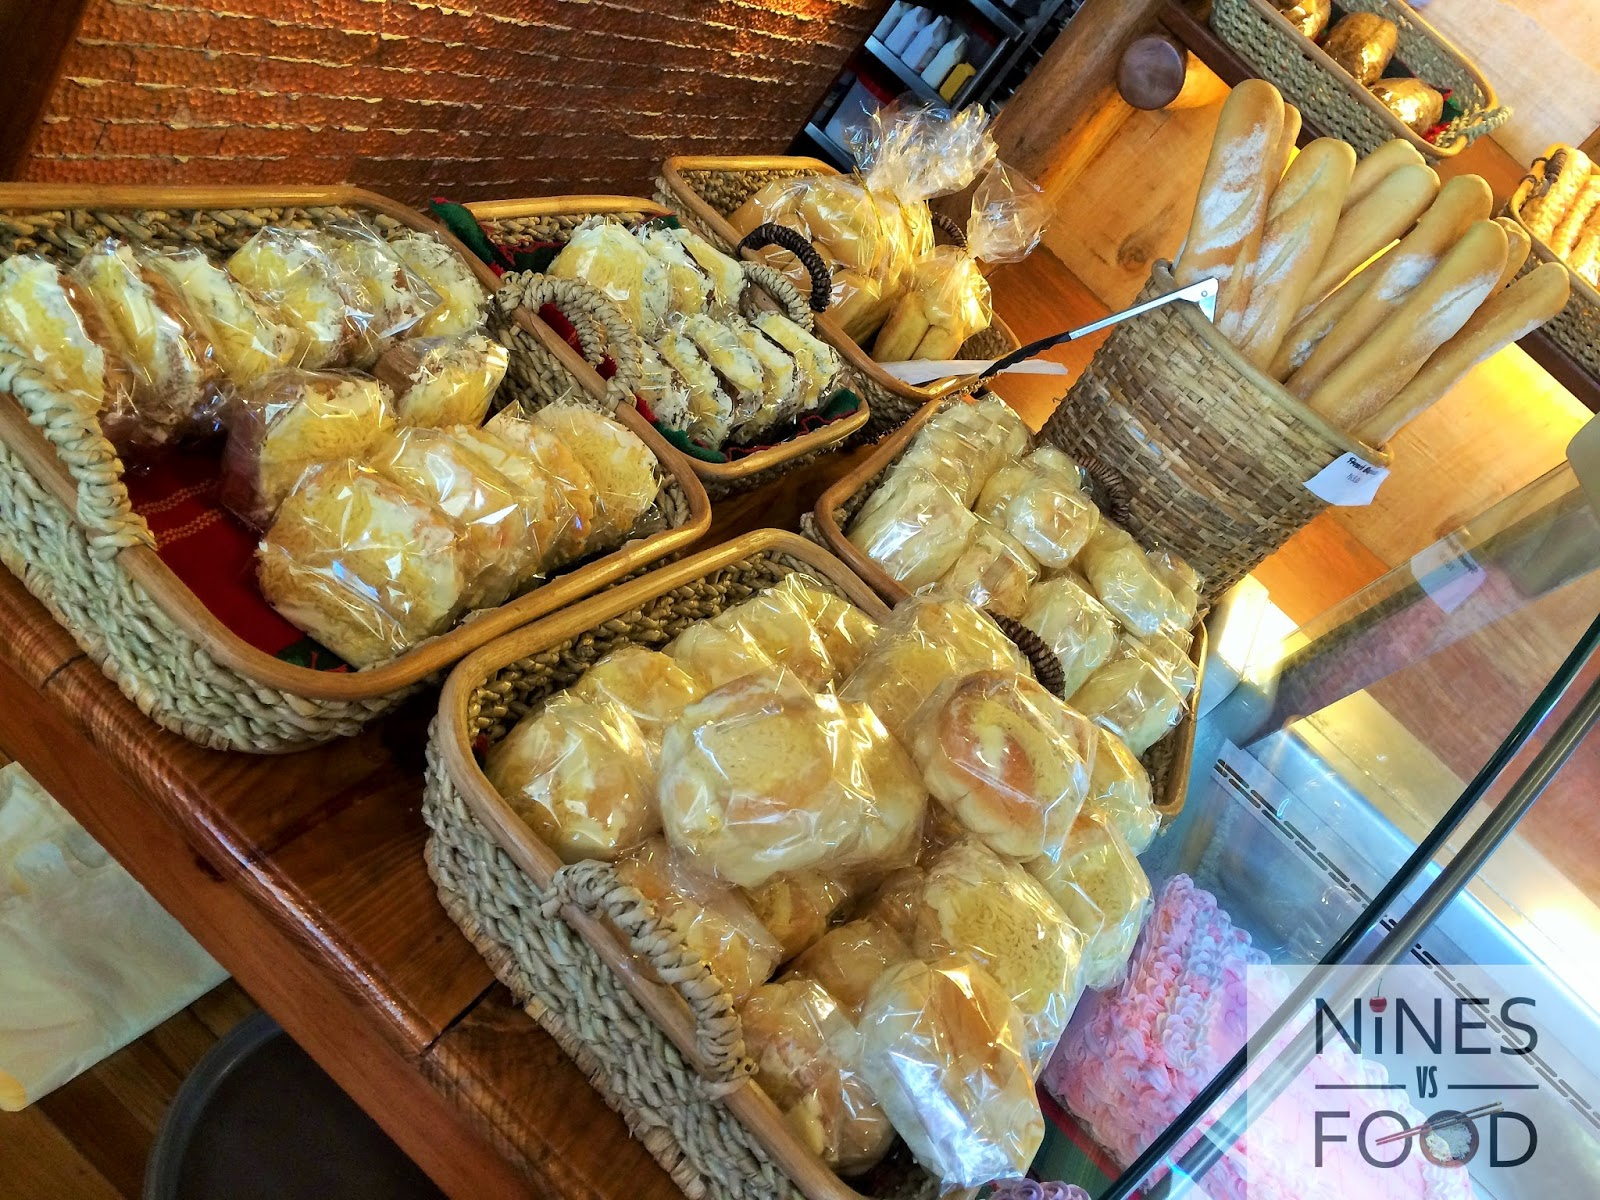 Nines vs. Food - Le Monet Hotel What To Do-9.jpg